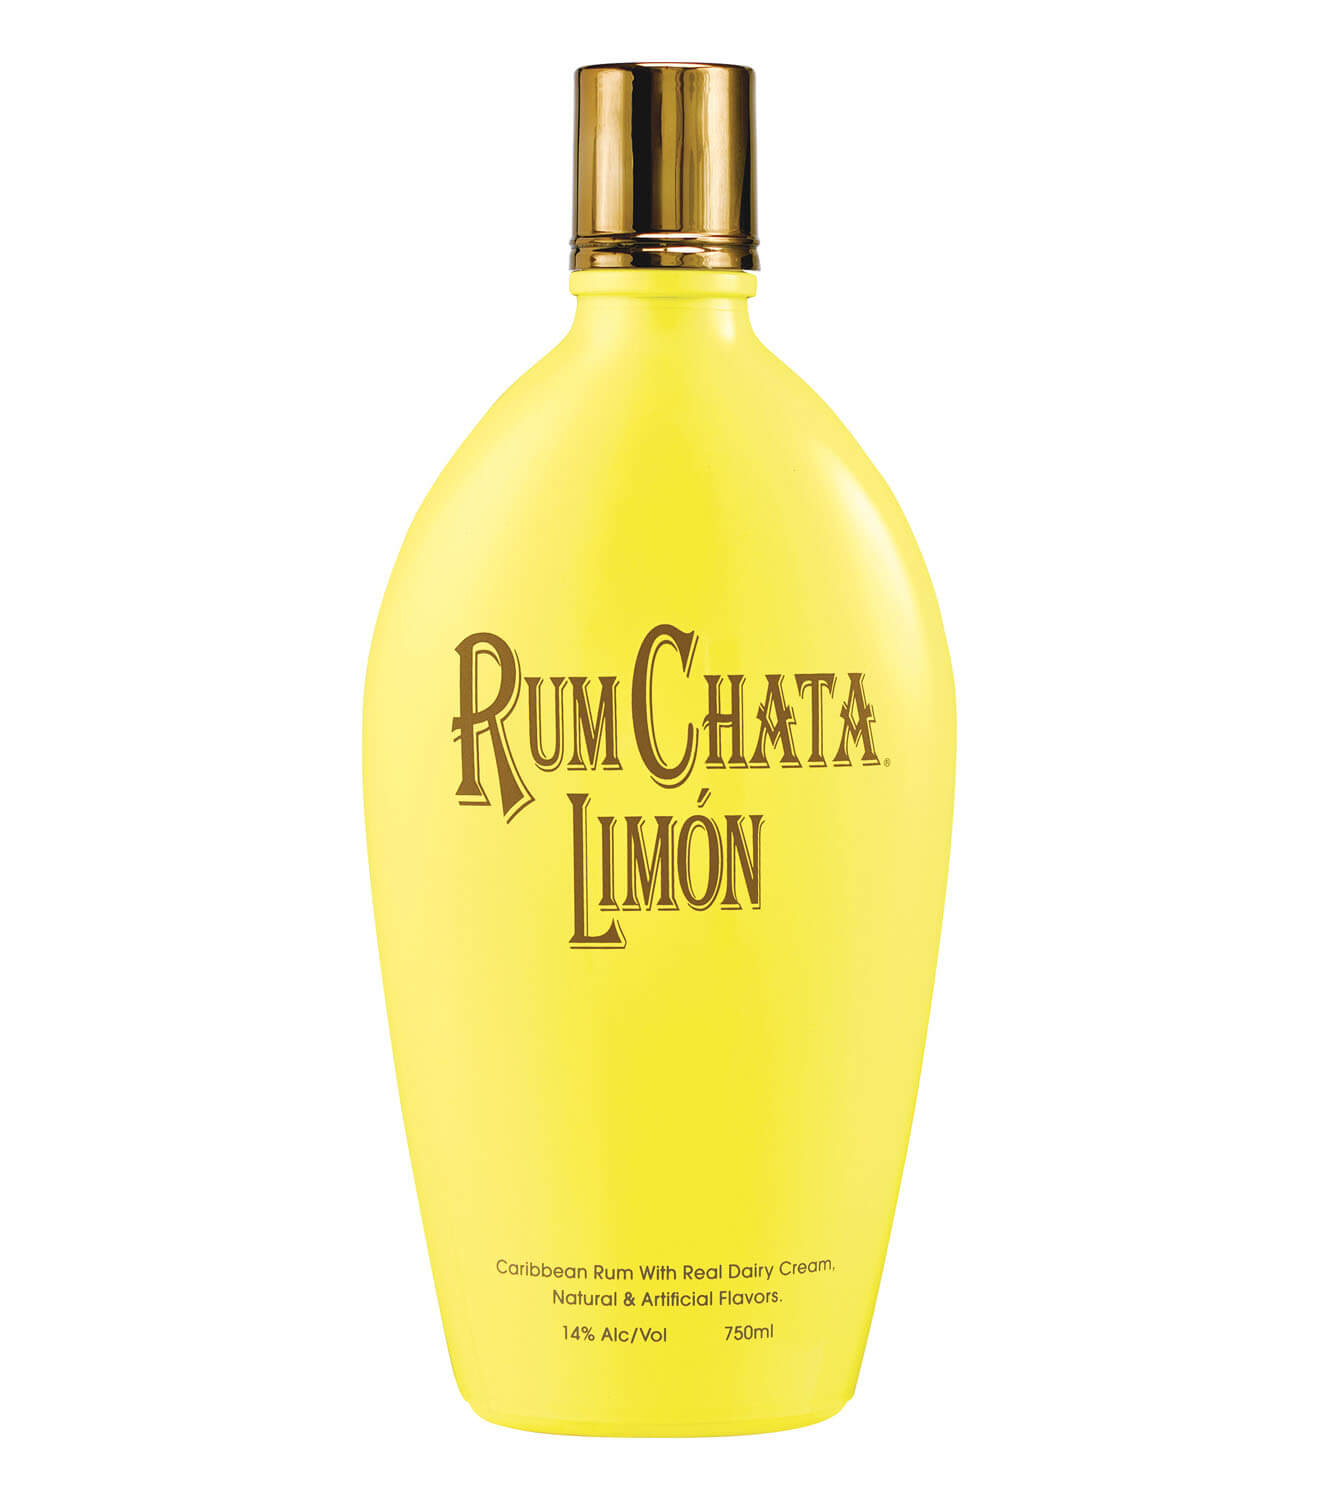 RumChata Limón, bottle on white